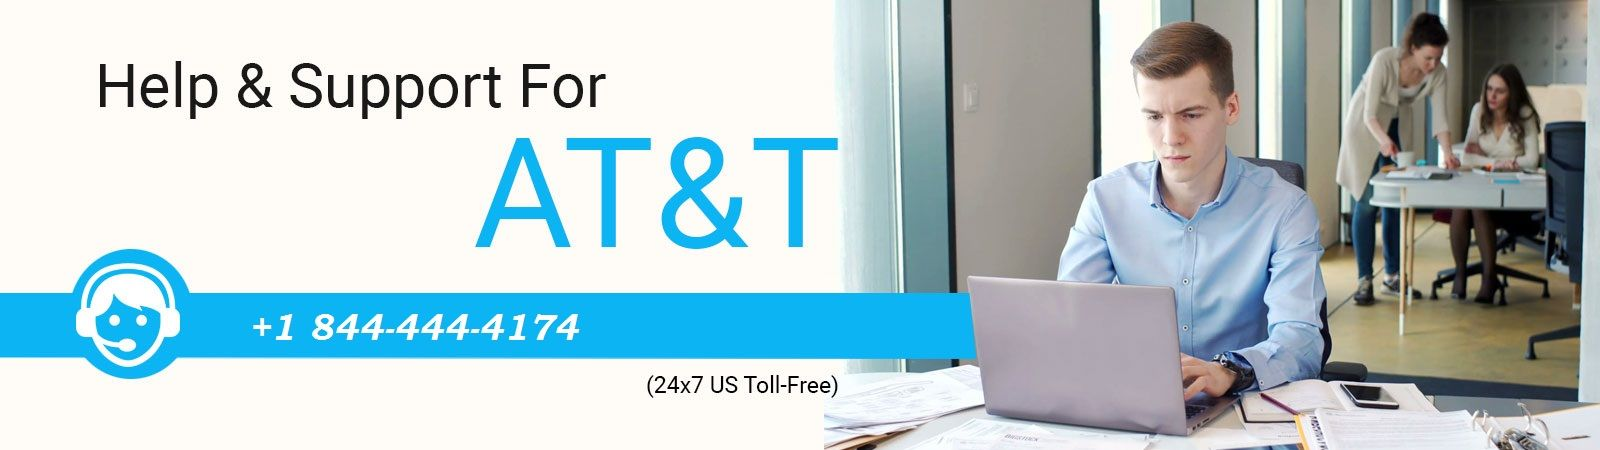 Pin on AT&T Email Support Number (+1) 844-444-4174